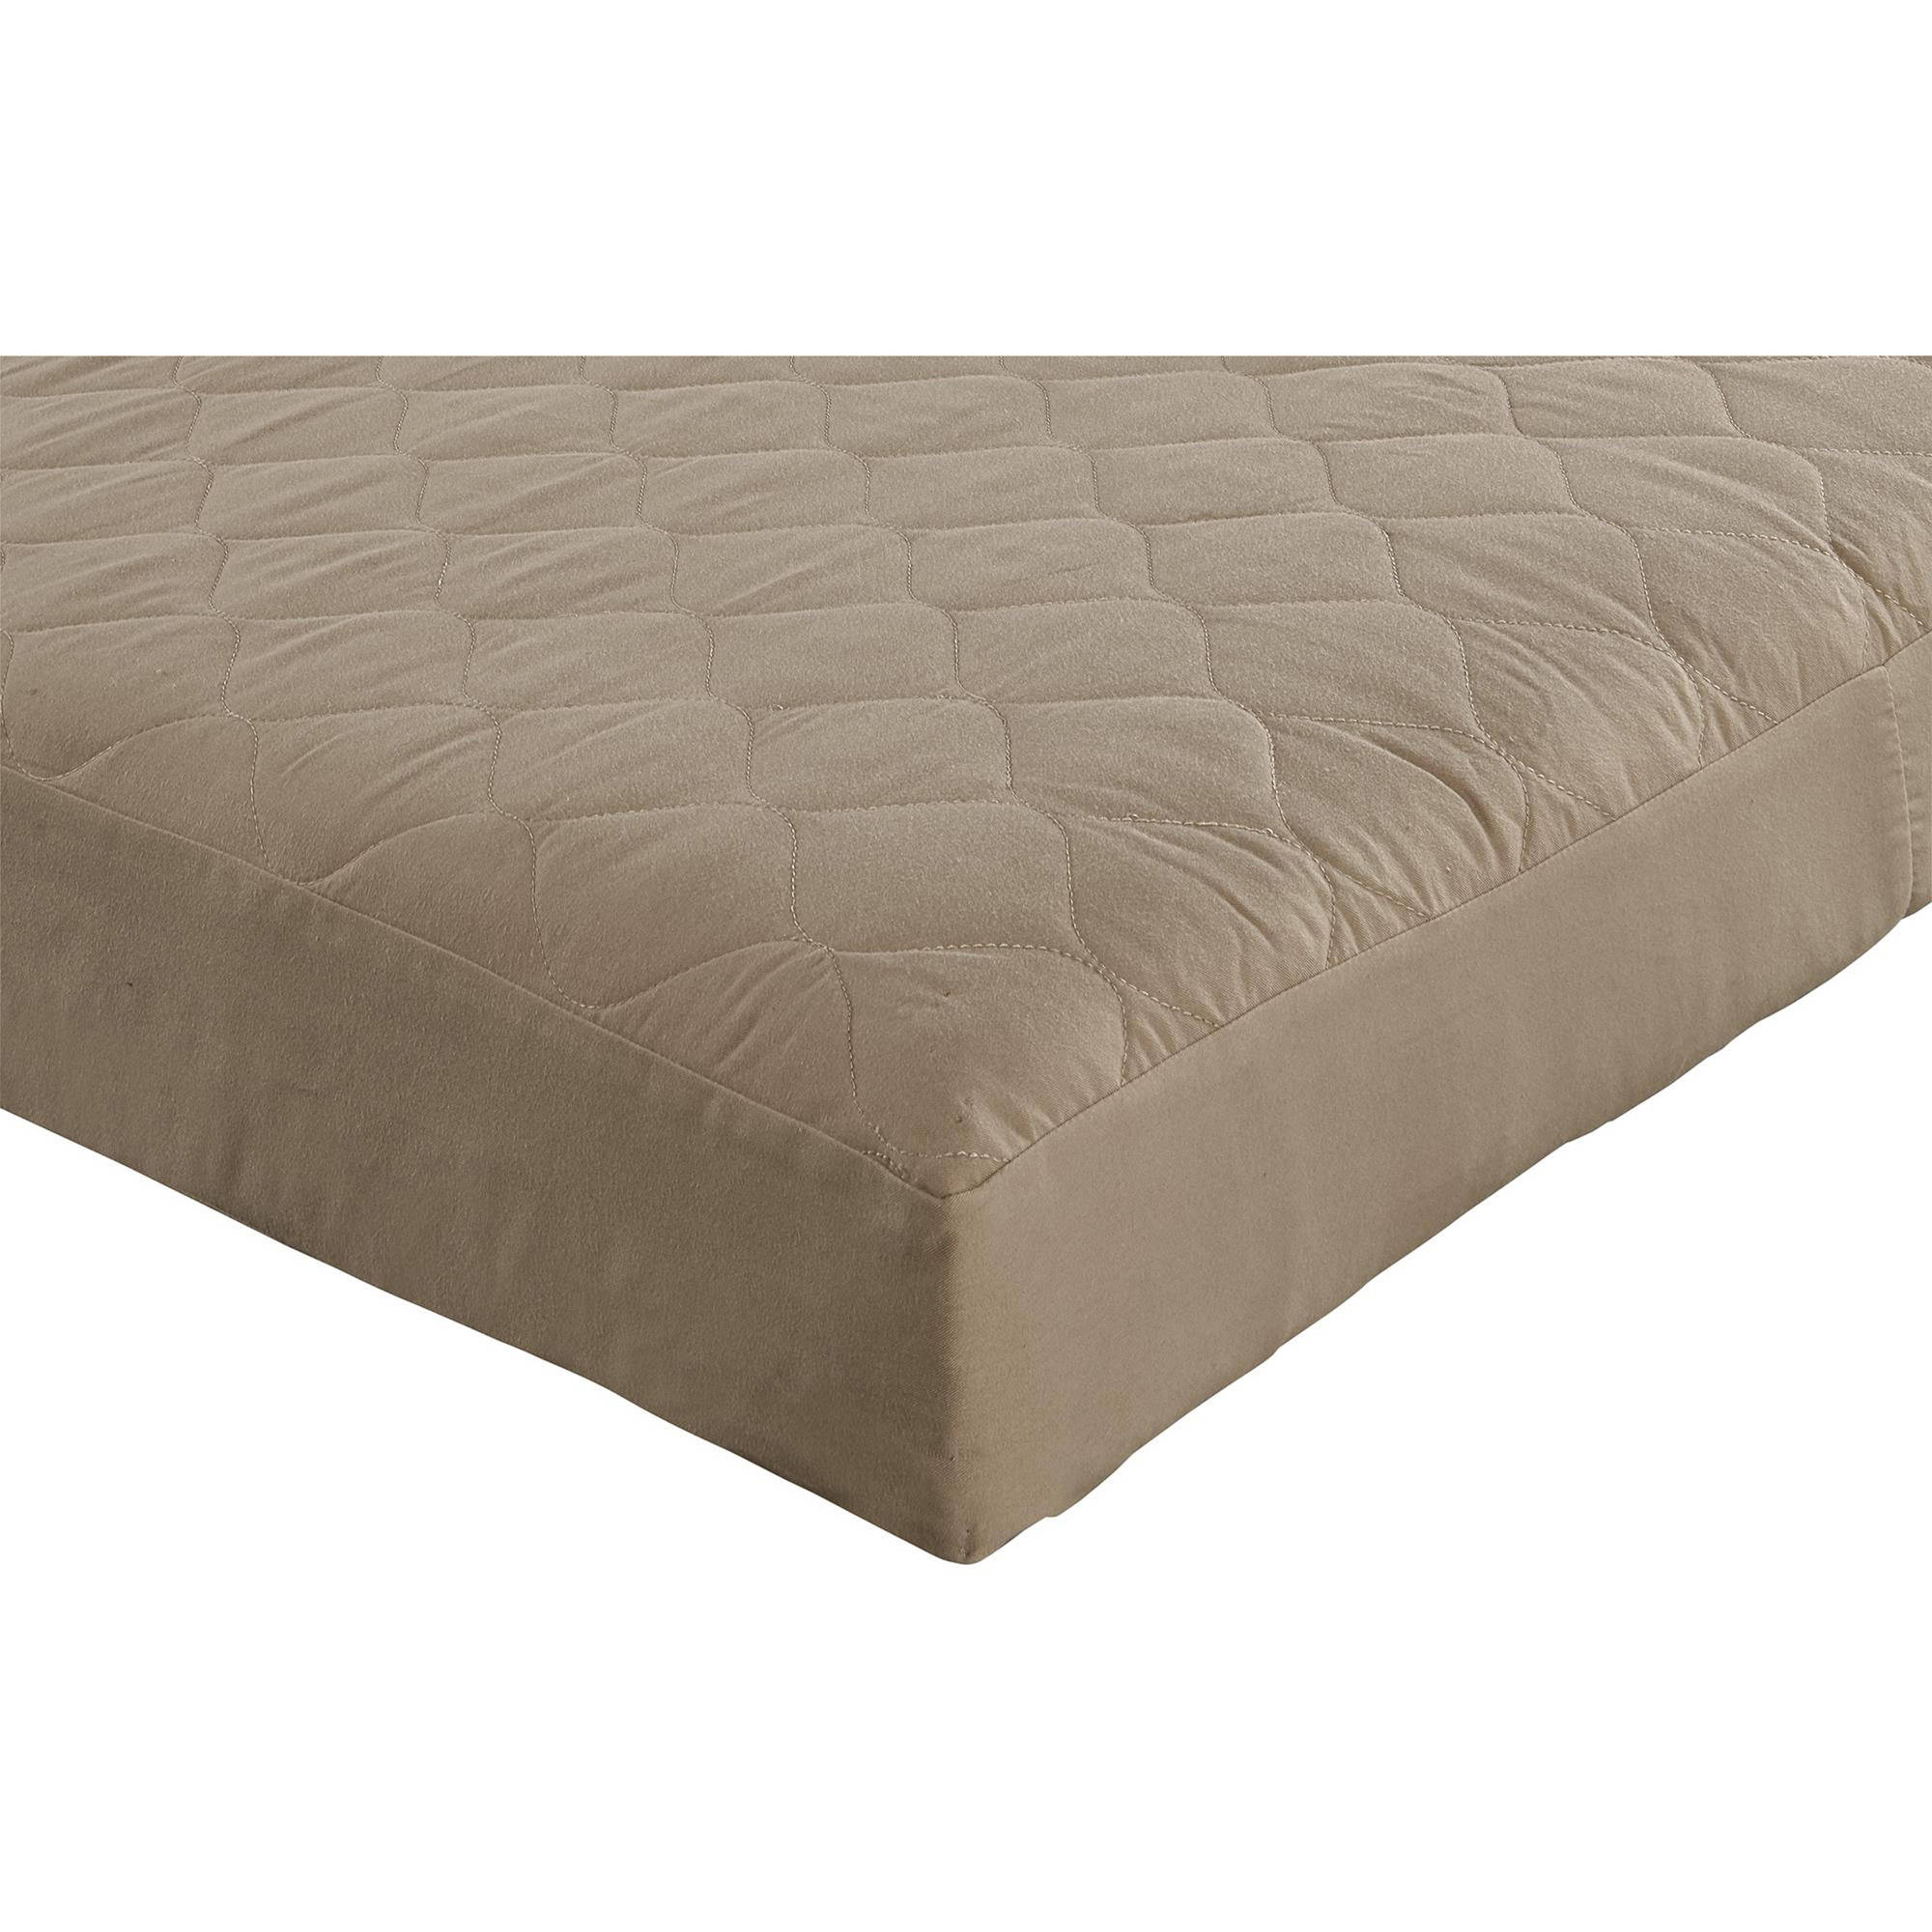 Dorel Home 6 Twin Quilted Mattress Multiple Colors 029986311214 Ebay